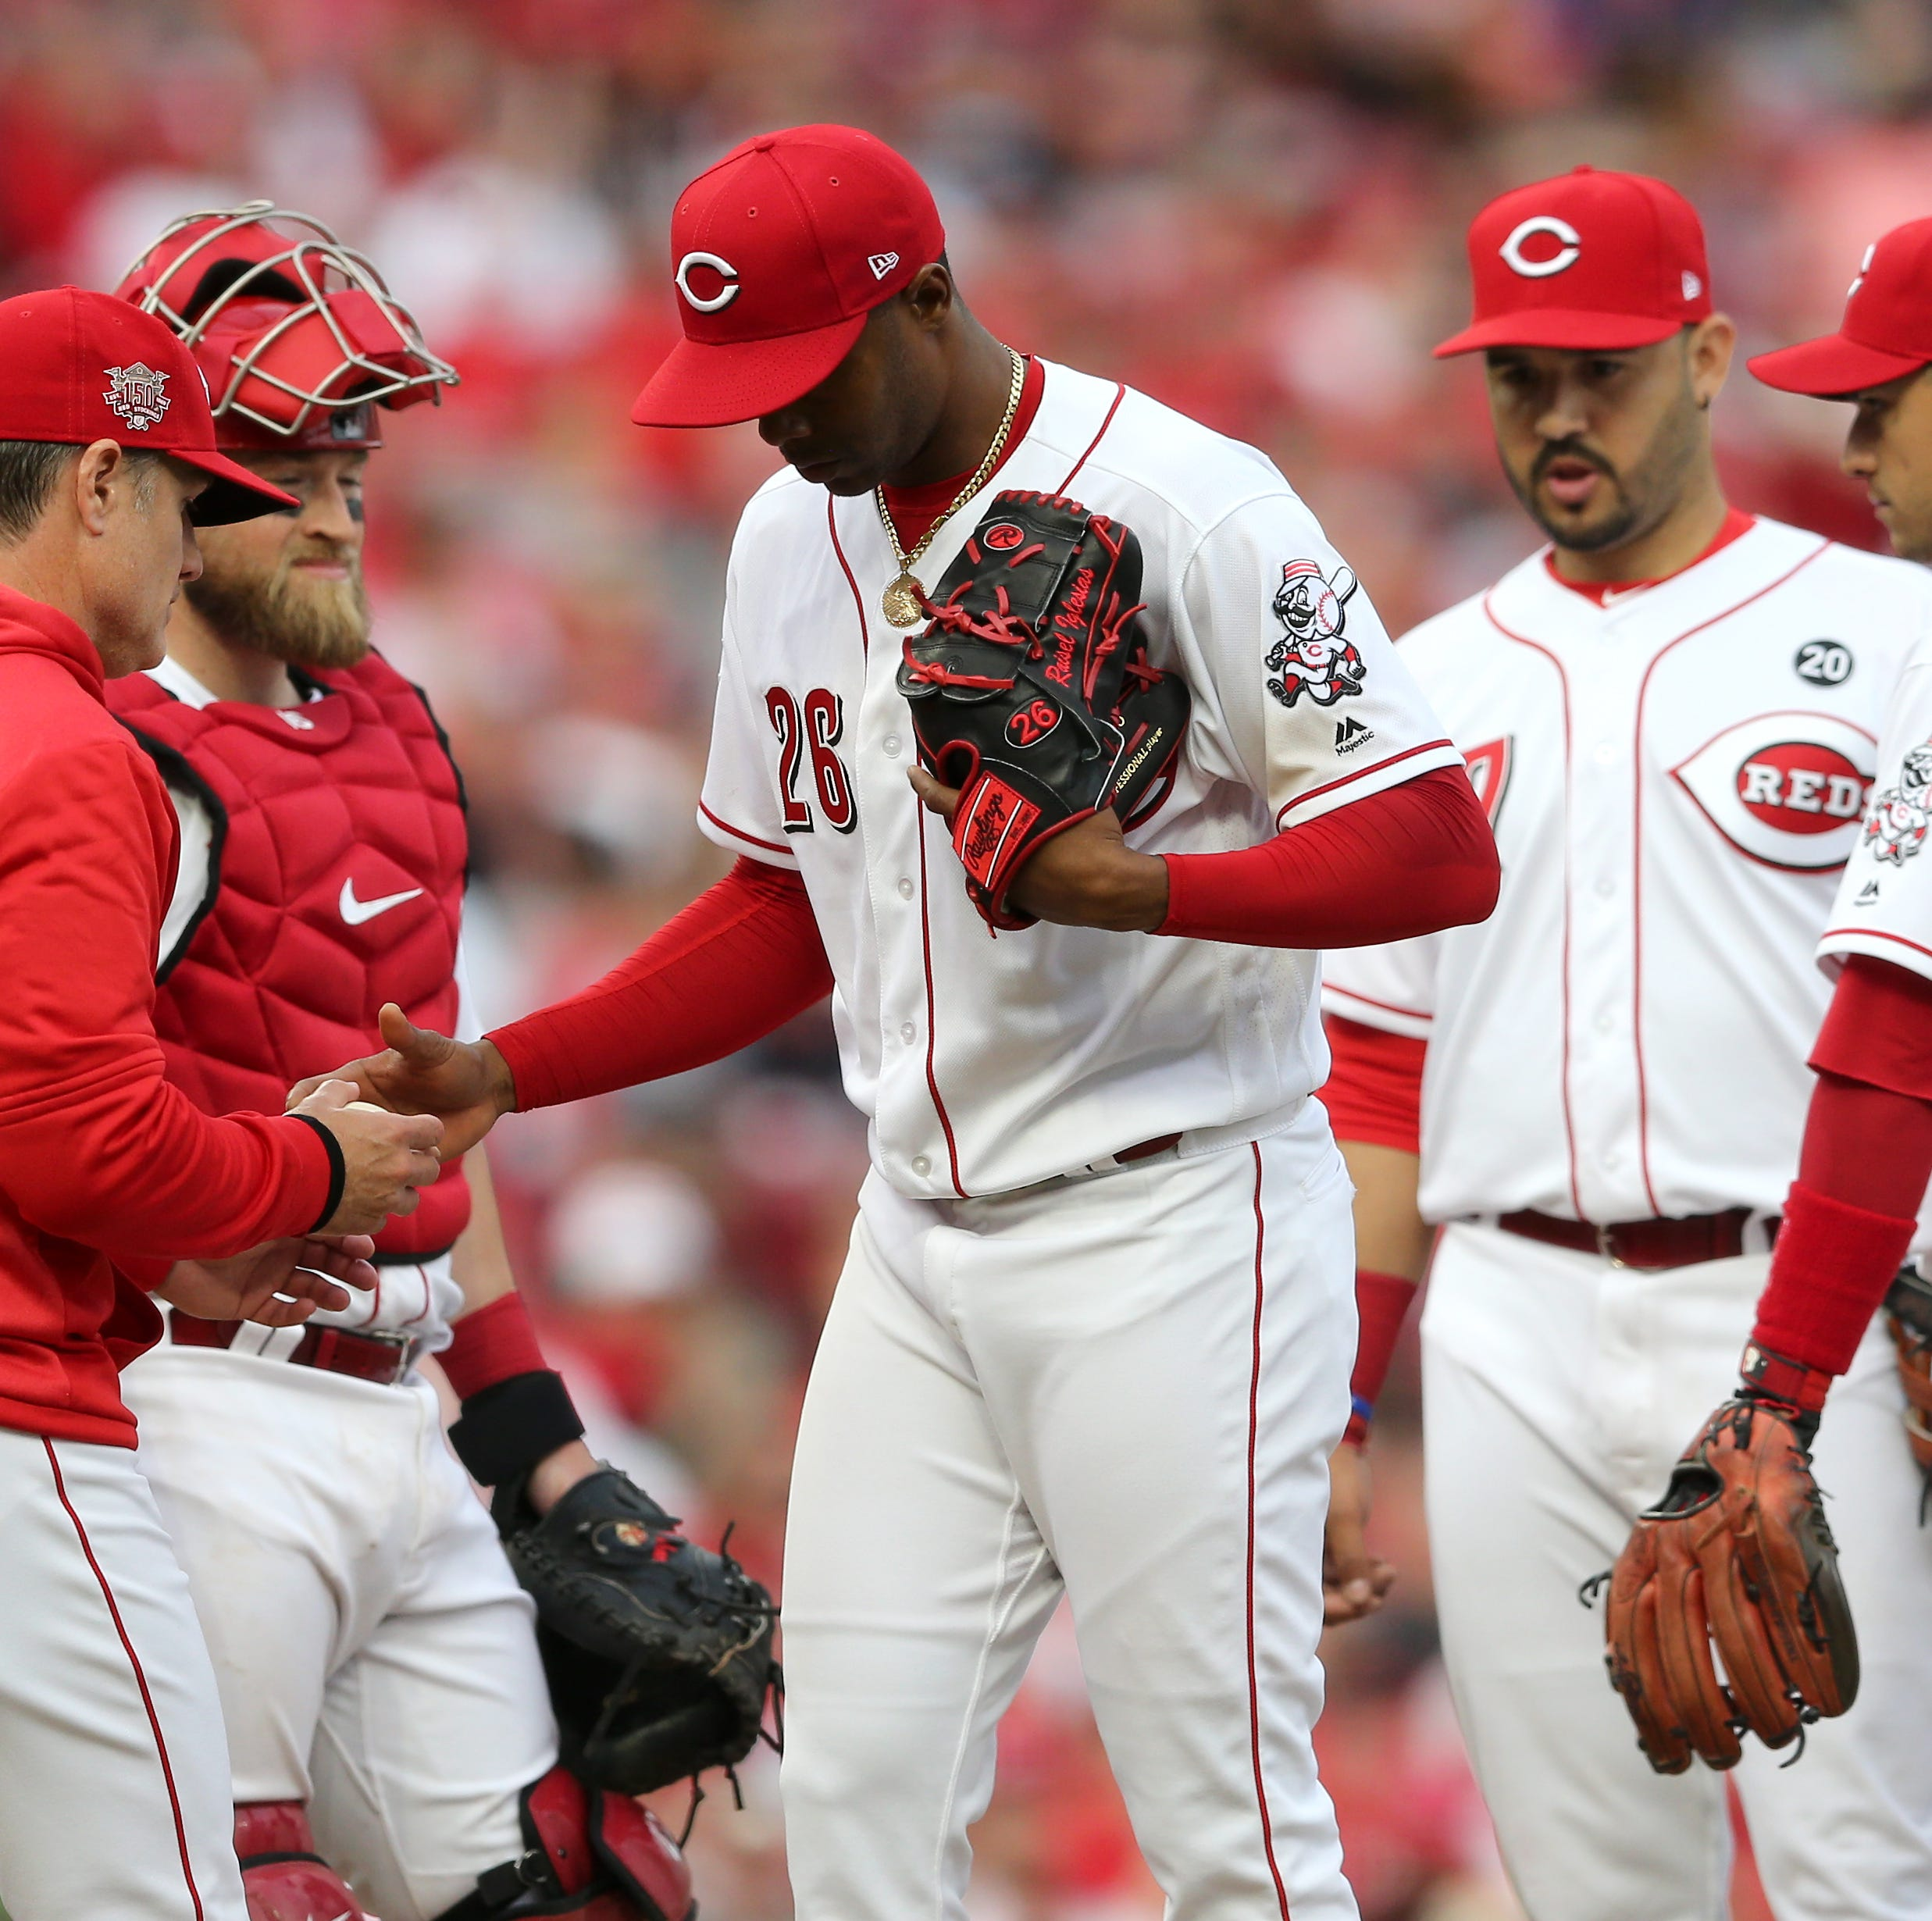 Cincinnati Reds closer Raisel Iglesias confident he will rebound from bad outings